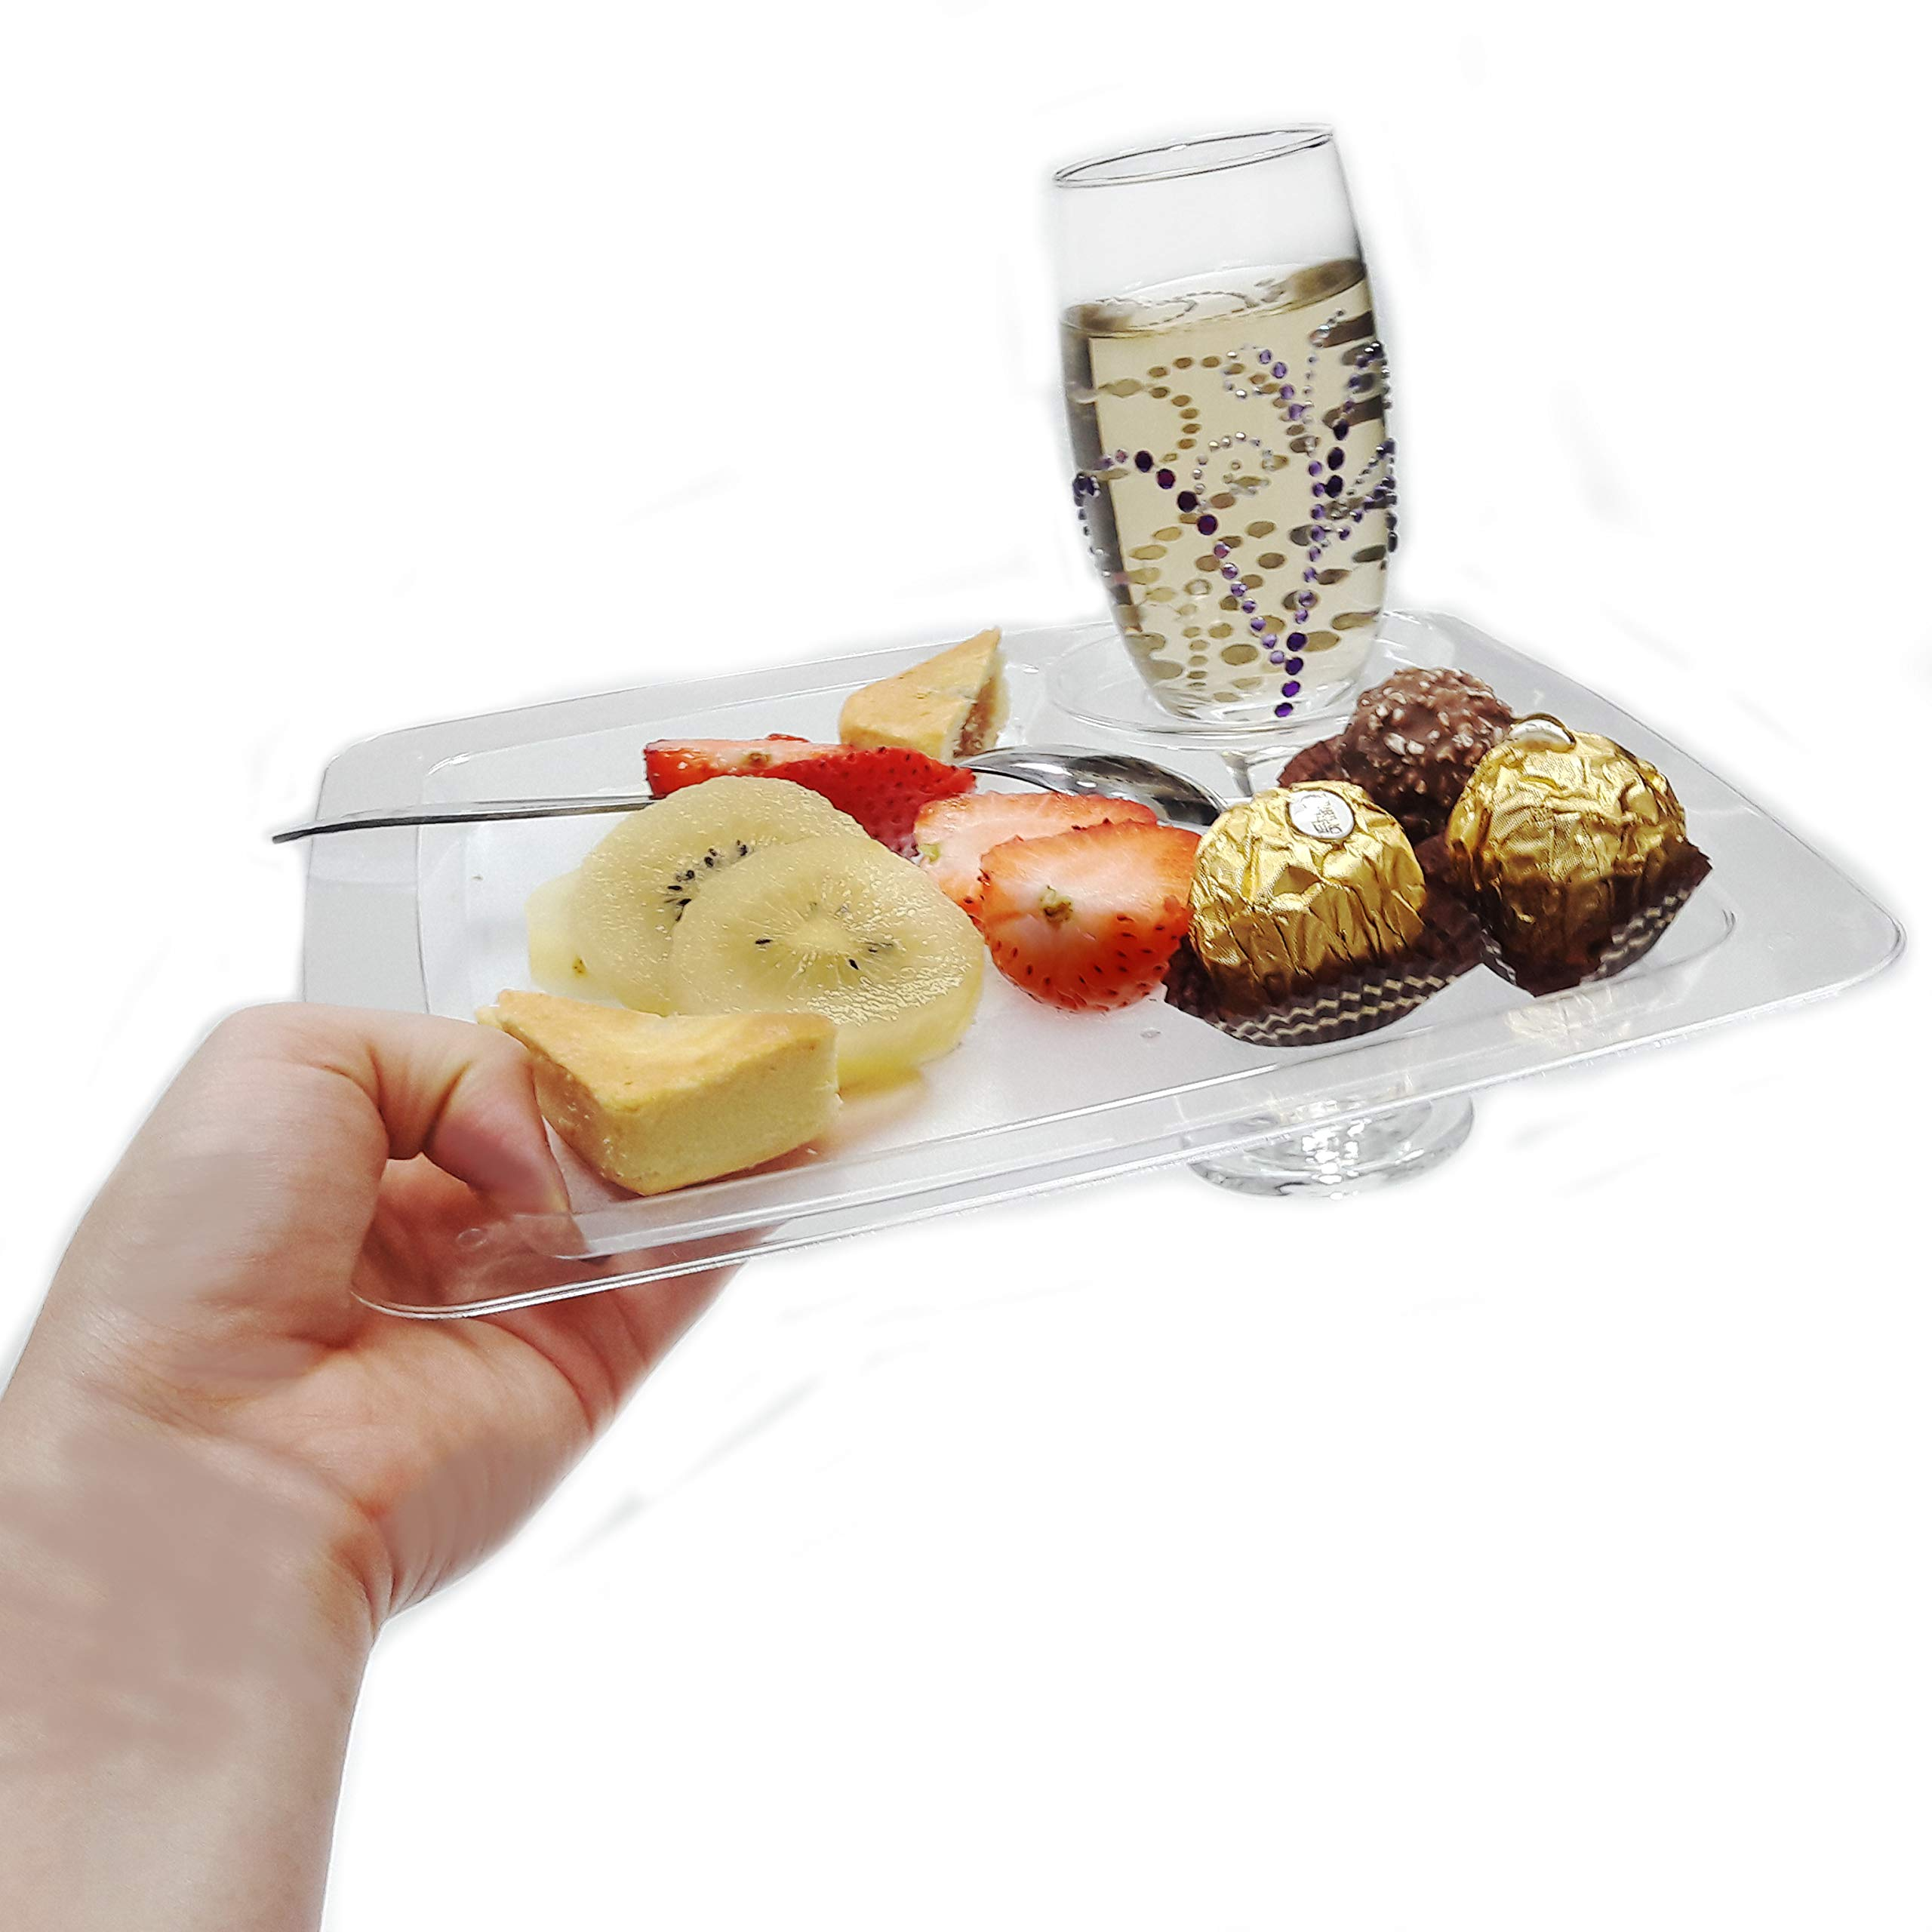 JCHB 9'' 48pc Clear Stemware Glass Holder Plates for Cocktail, Wine Tasting, Dinner, Appetizer, Dessert, Food Buffet, Washable Party Plates by JC HUMMINGBIRD